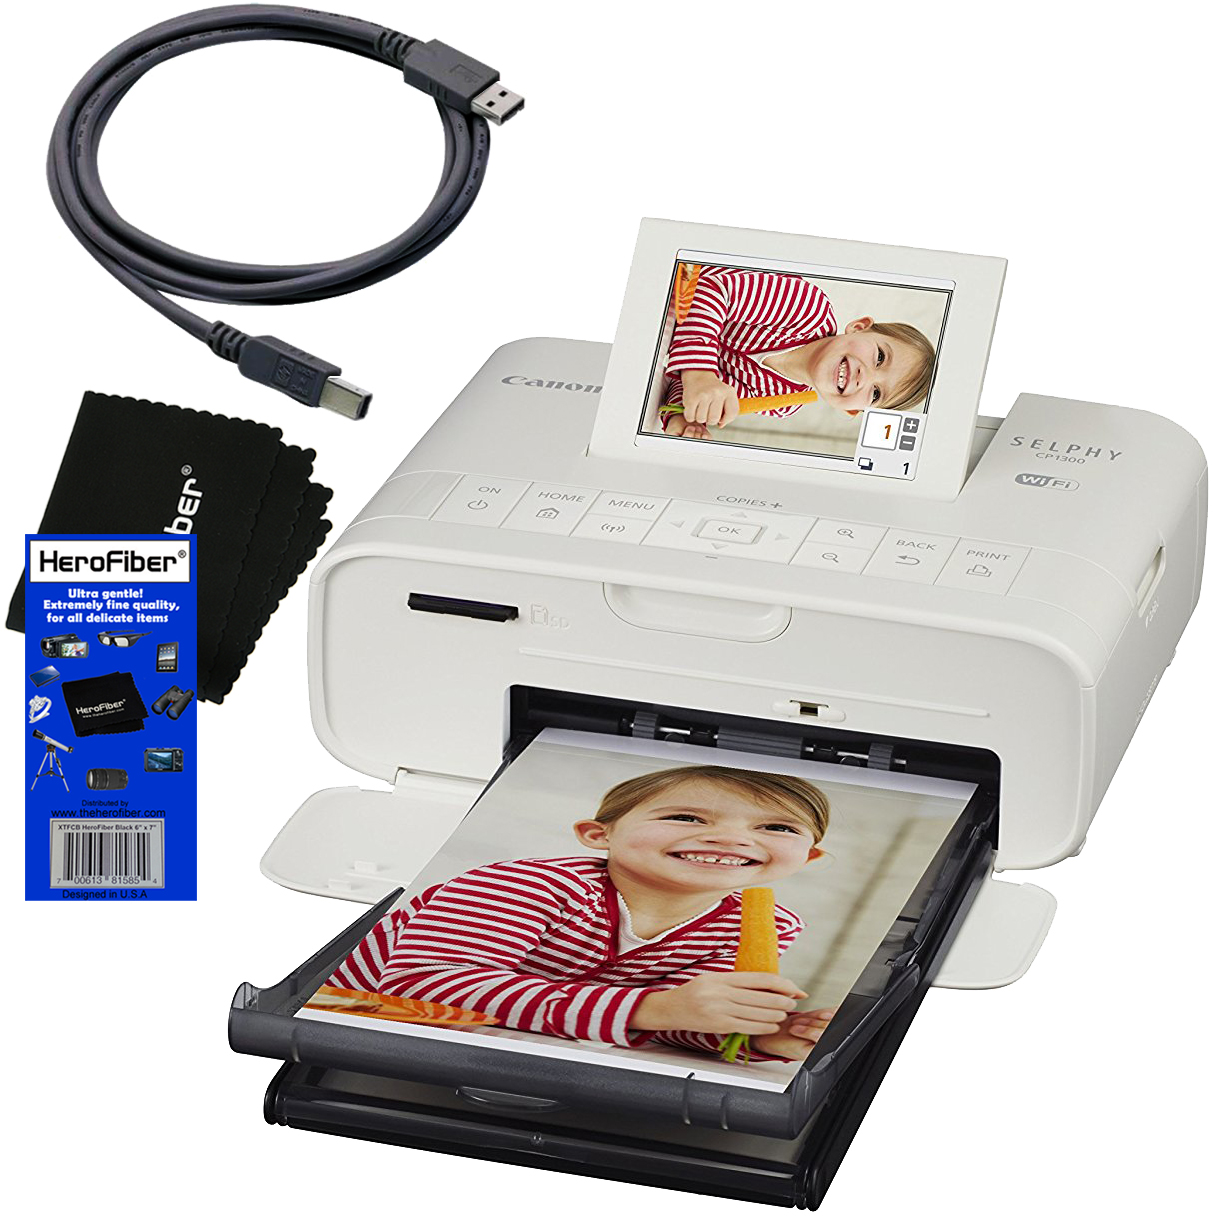 Canon SELPHY CP1300 Wireless Compact Photo Printer (White) + USB Printer Cable + HeroFiber Ultra Gentle Cleaning Cloth